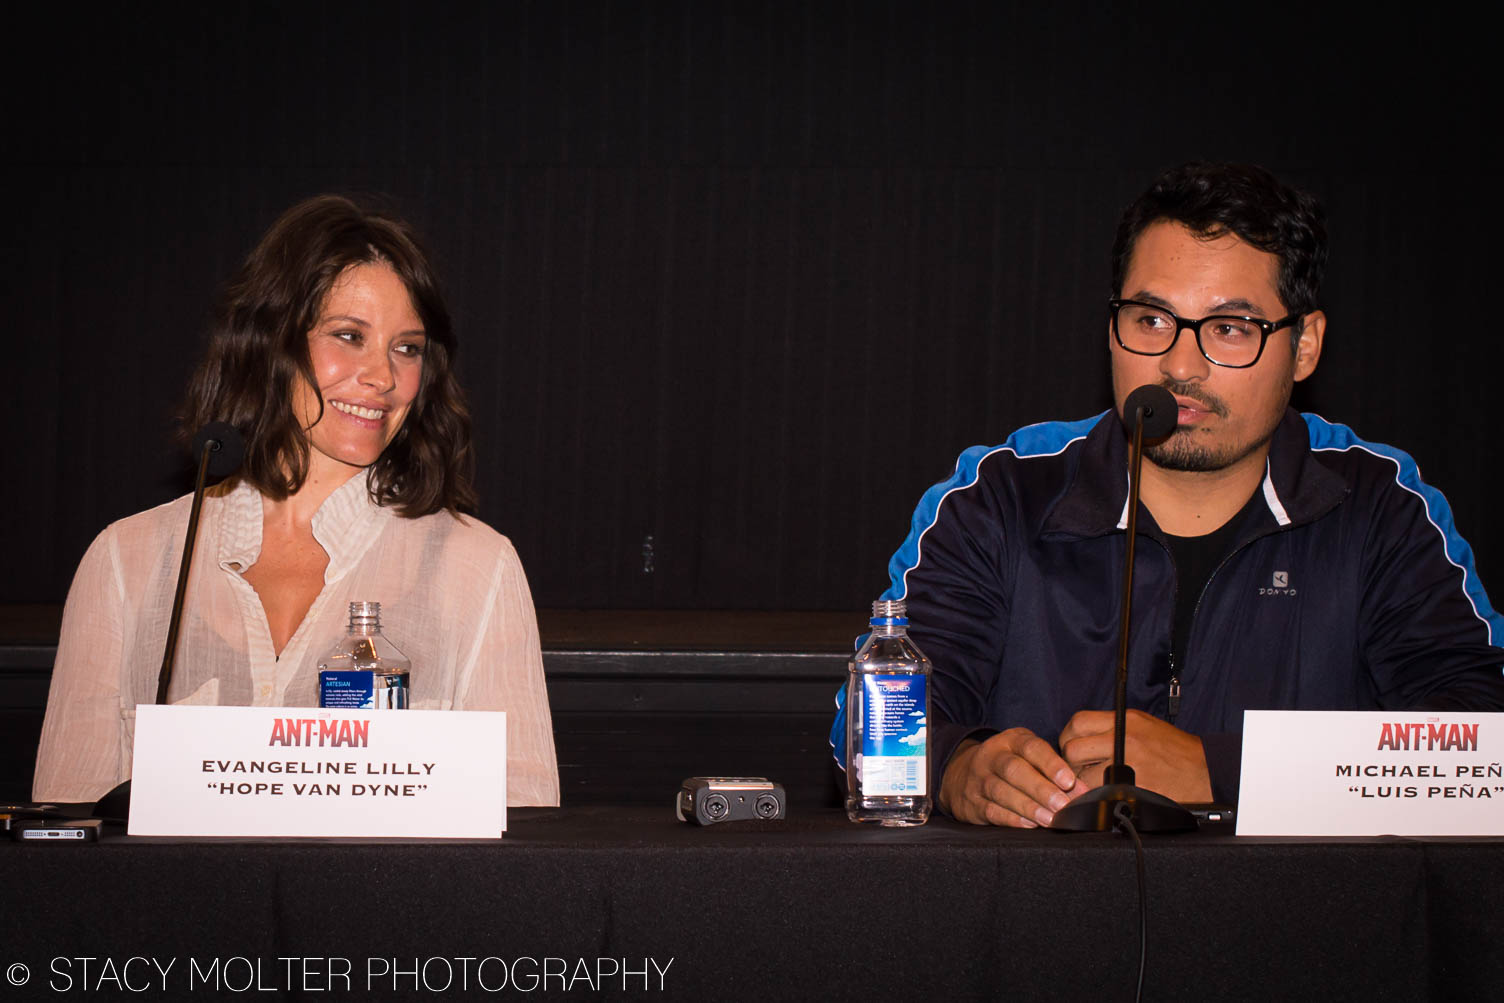 Evangeline Lilly, Michael Pena - Ant-Man Press Conference